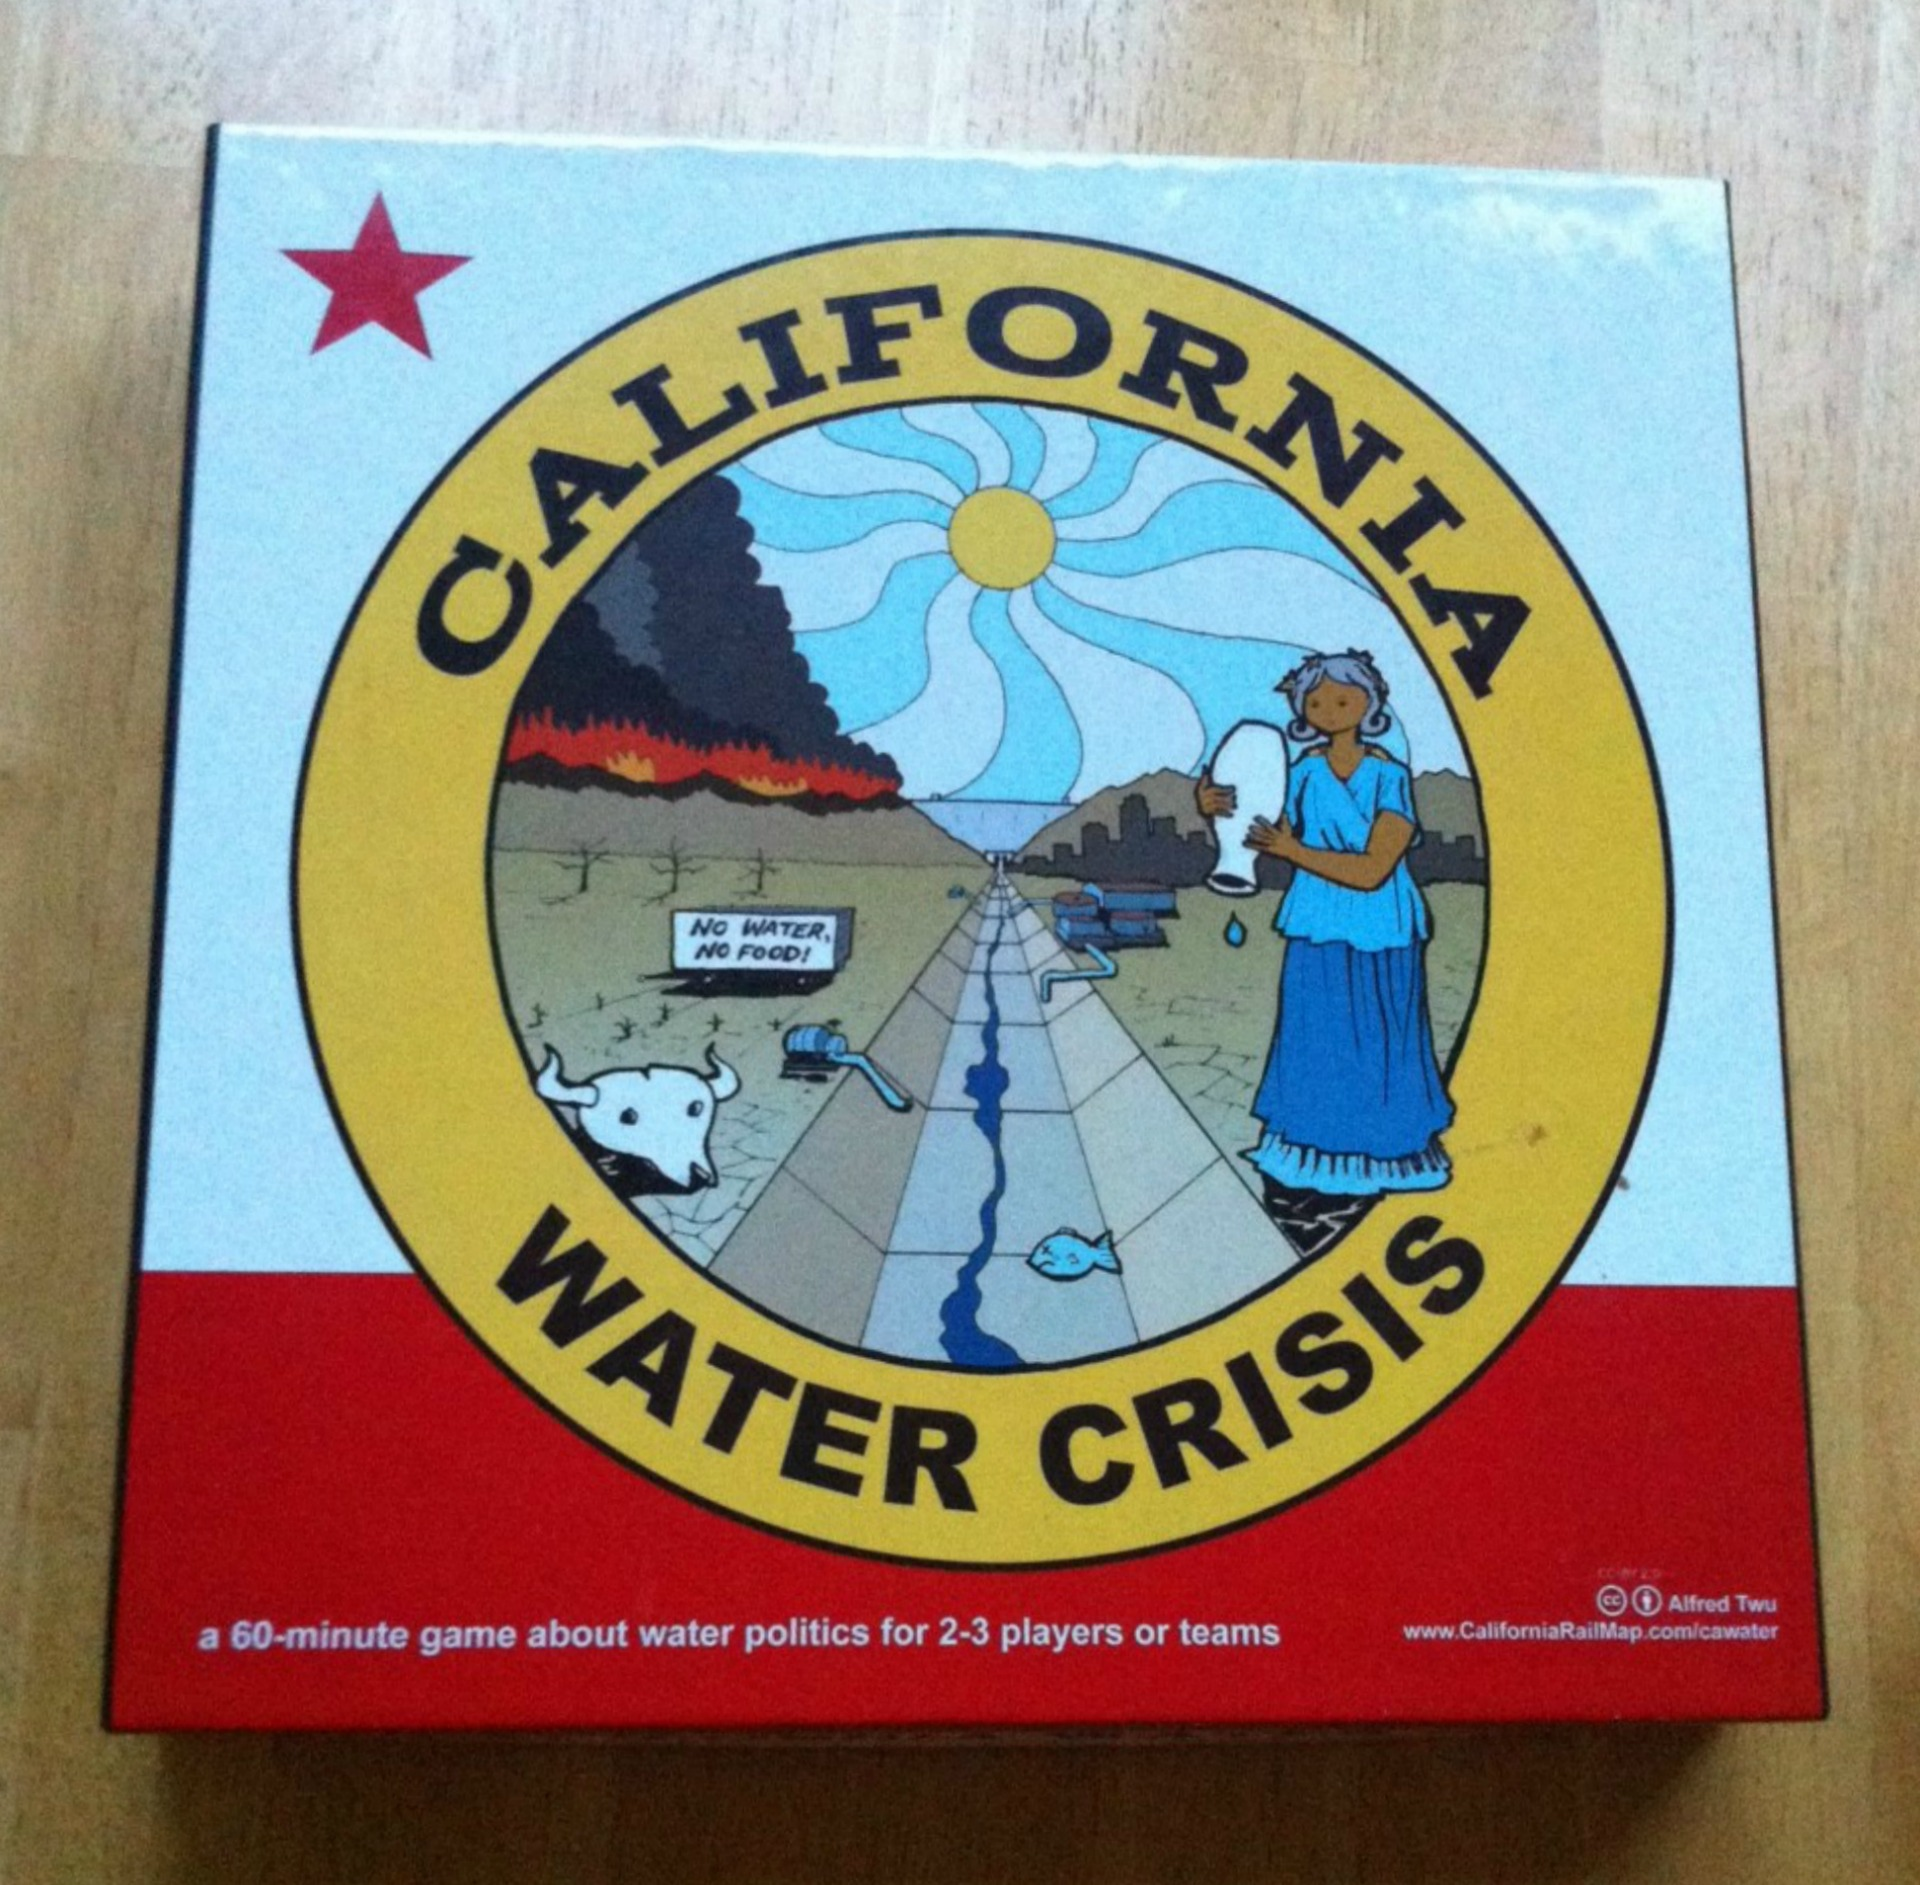 The signs are so iconic they were even featured in this Kickstarter funded board game about California's water issues. Photo: Shelby Pope